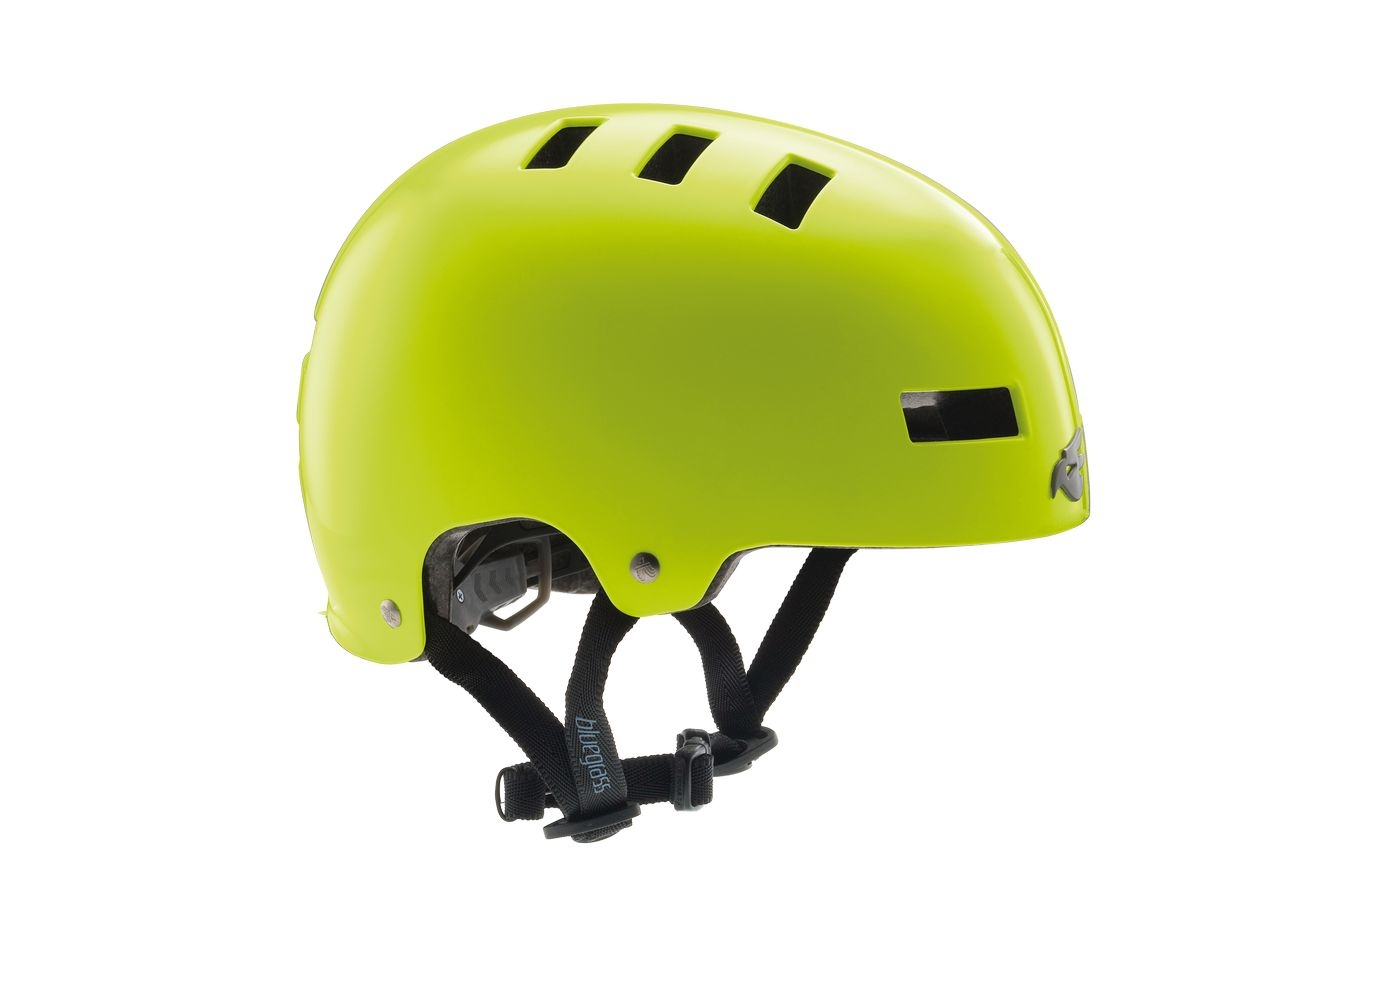 Casque Bluegrass Superbold Jaune/Noir - S 51-55